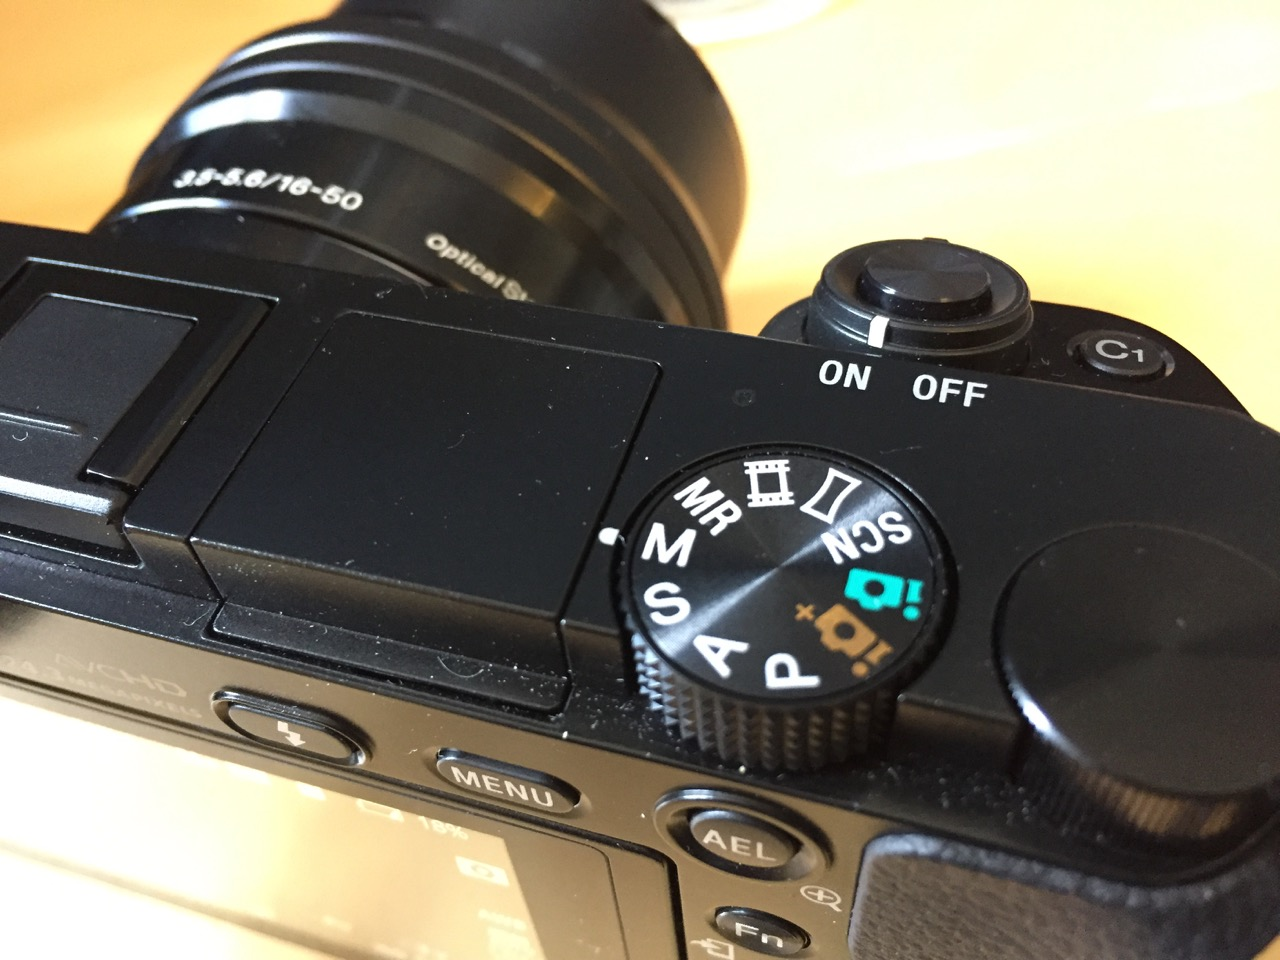 Find the 'M' option on the dial for full Manual mode